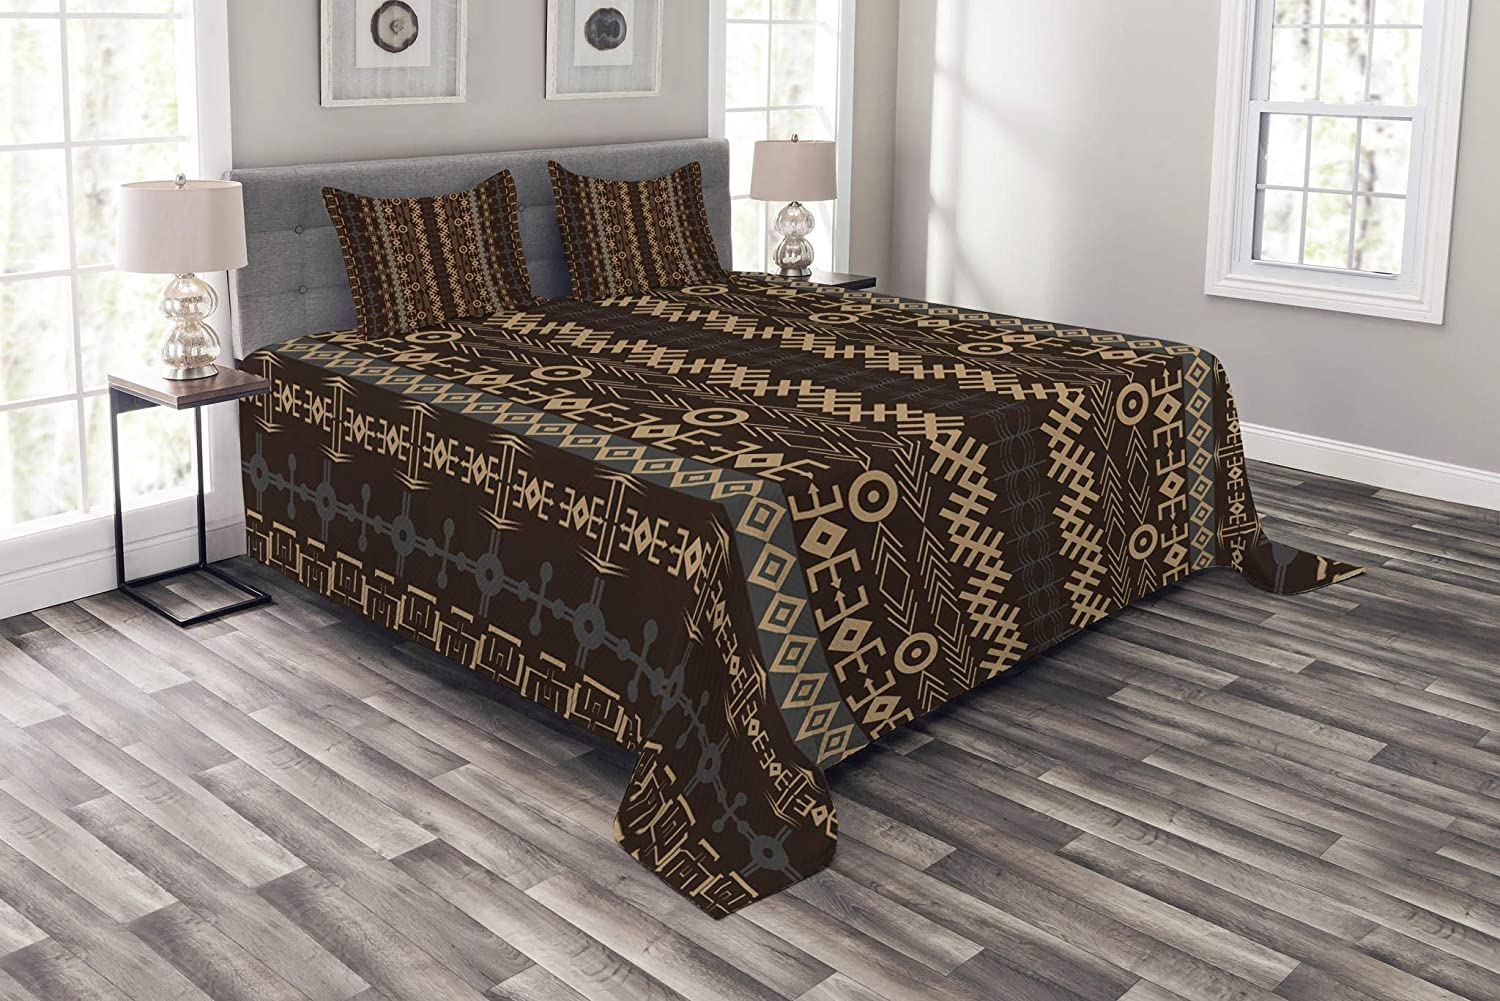 Ambesonne African Bedspread, Traditional Pattern Geometric Shapes Arrows Striped Tribal, Decorative Quilted 3 Piece Coverlet Set with 2 Pillow Shams, Queen Size, Yellow Bluegrey